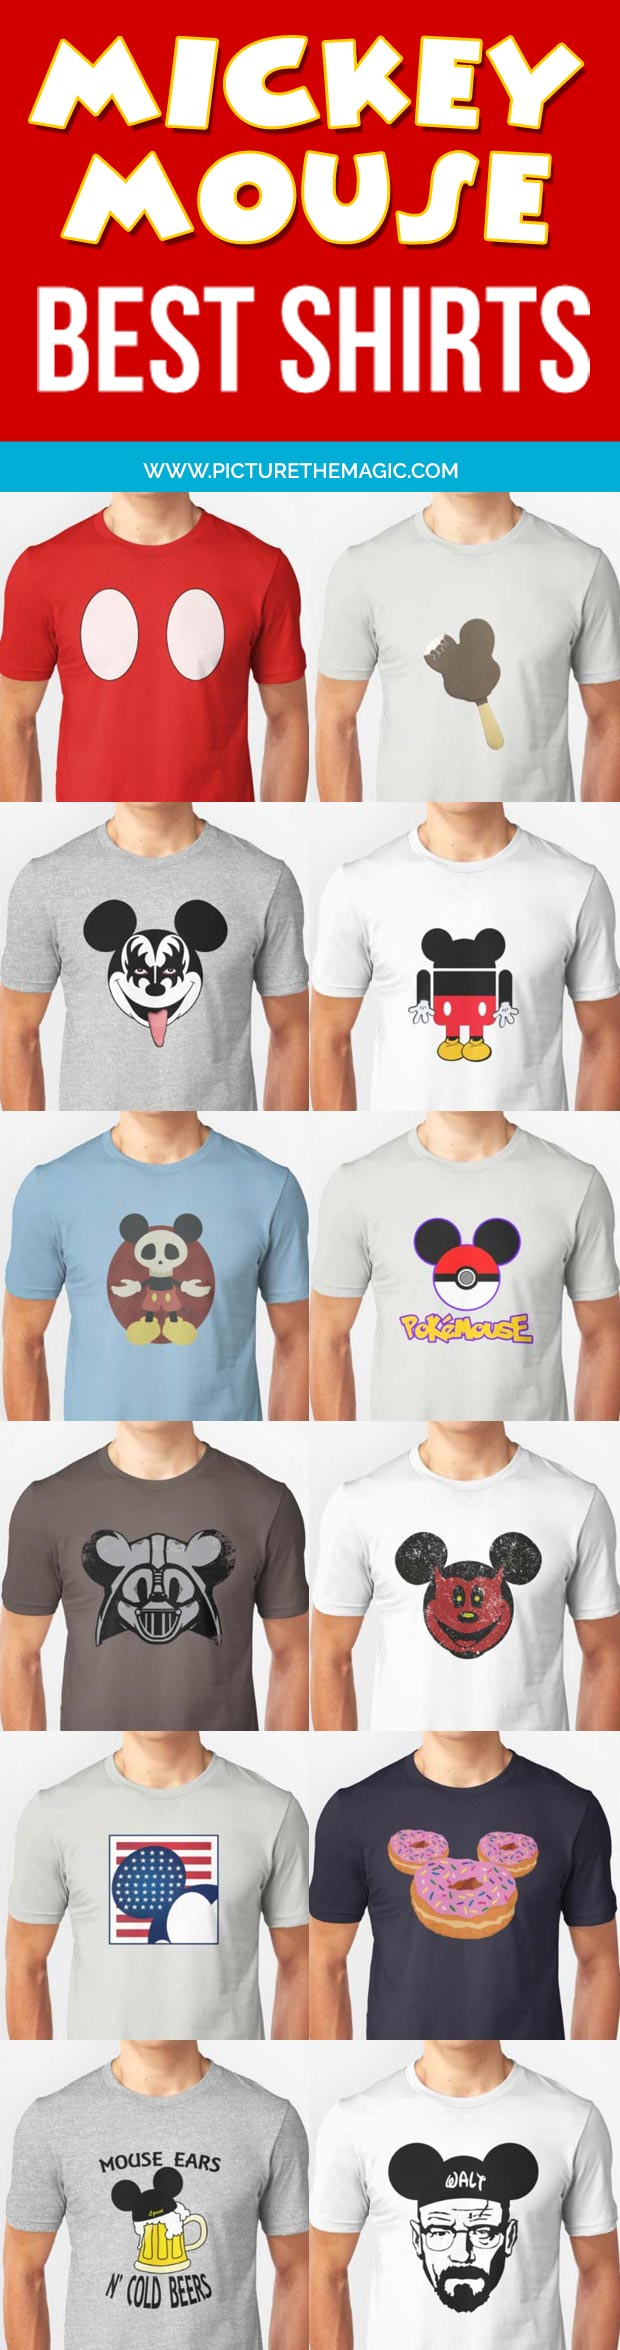 Mickey Mouse Best Shirts (Buyer's Guide)